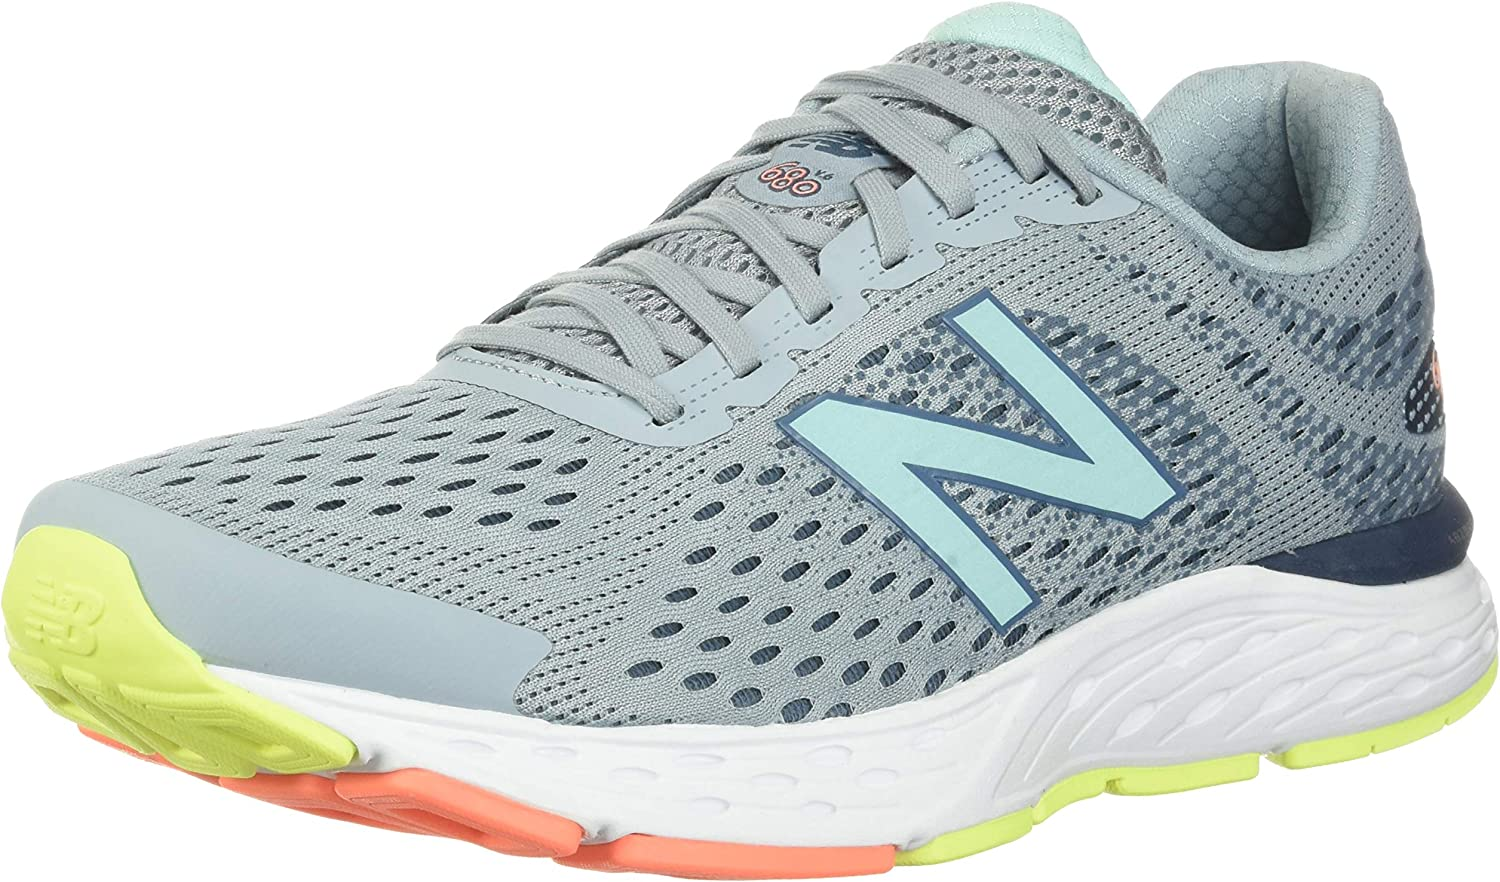 New Balance Womens 680v6 Cushioning Running Shoe: Amazon.es: Zapatos y complementos